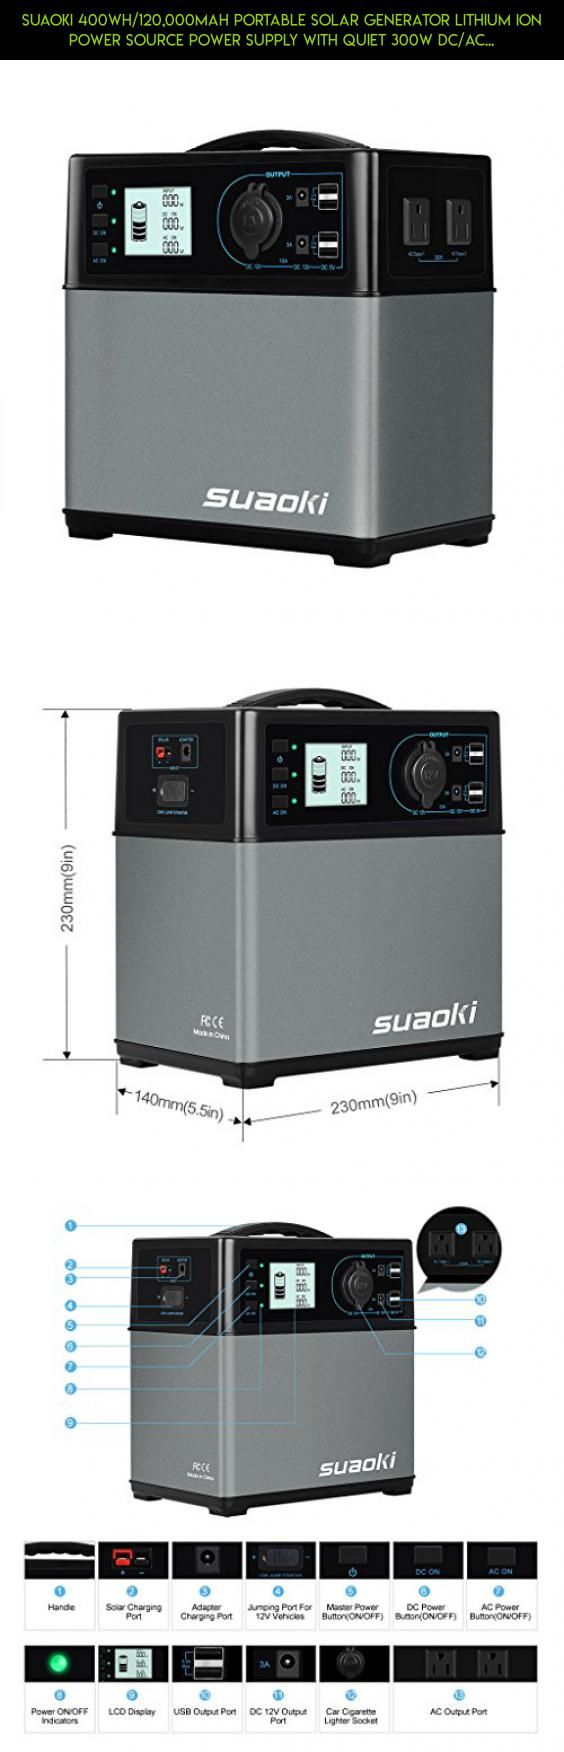 Suaoki 400Wh/120,000mAh Portable Solar Generator Lithium ion Power Source Power Supply with Quiet 300W DC/AC Inverter, 12V Car, DC/AC/USB Outputs, Charged by Solar Panel/AC Outlet/Cars #fpv #tech #shopping #gadgets #plans #storage #products #car #parts #battery #drone #kit #a #camera #technology #racing